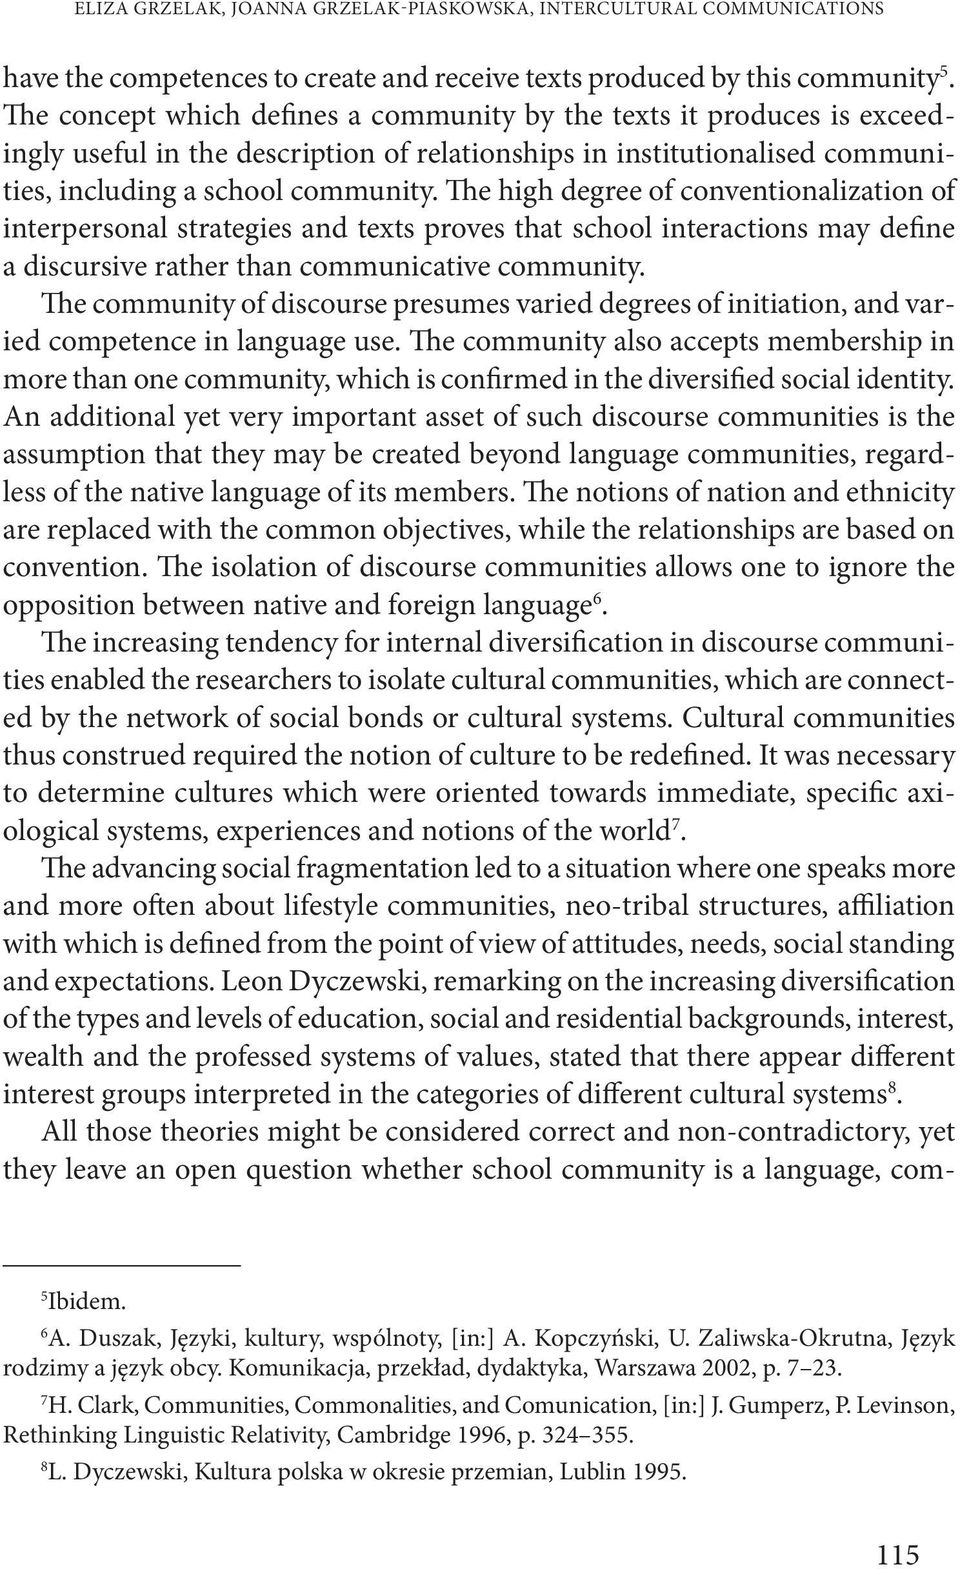 The high degree of conventionalization of interpersonal strategies and texts proves that school interactions may define a discursive rather than communicative community.